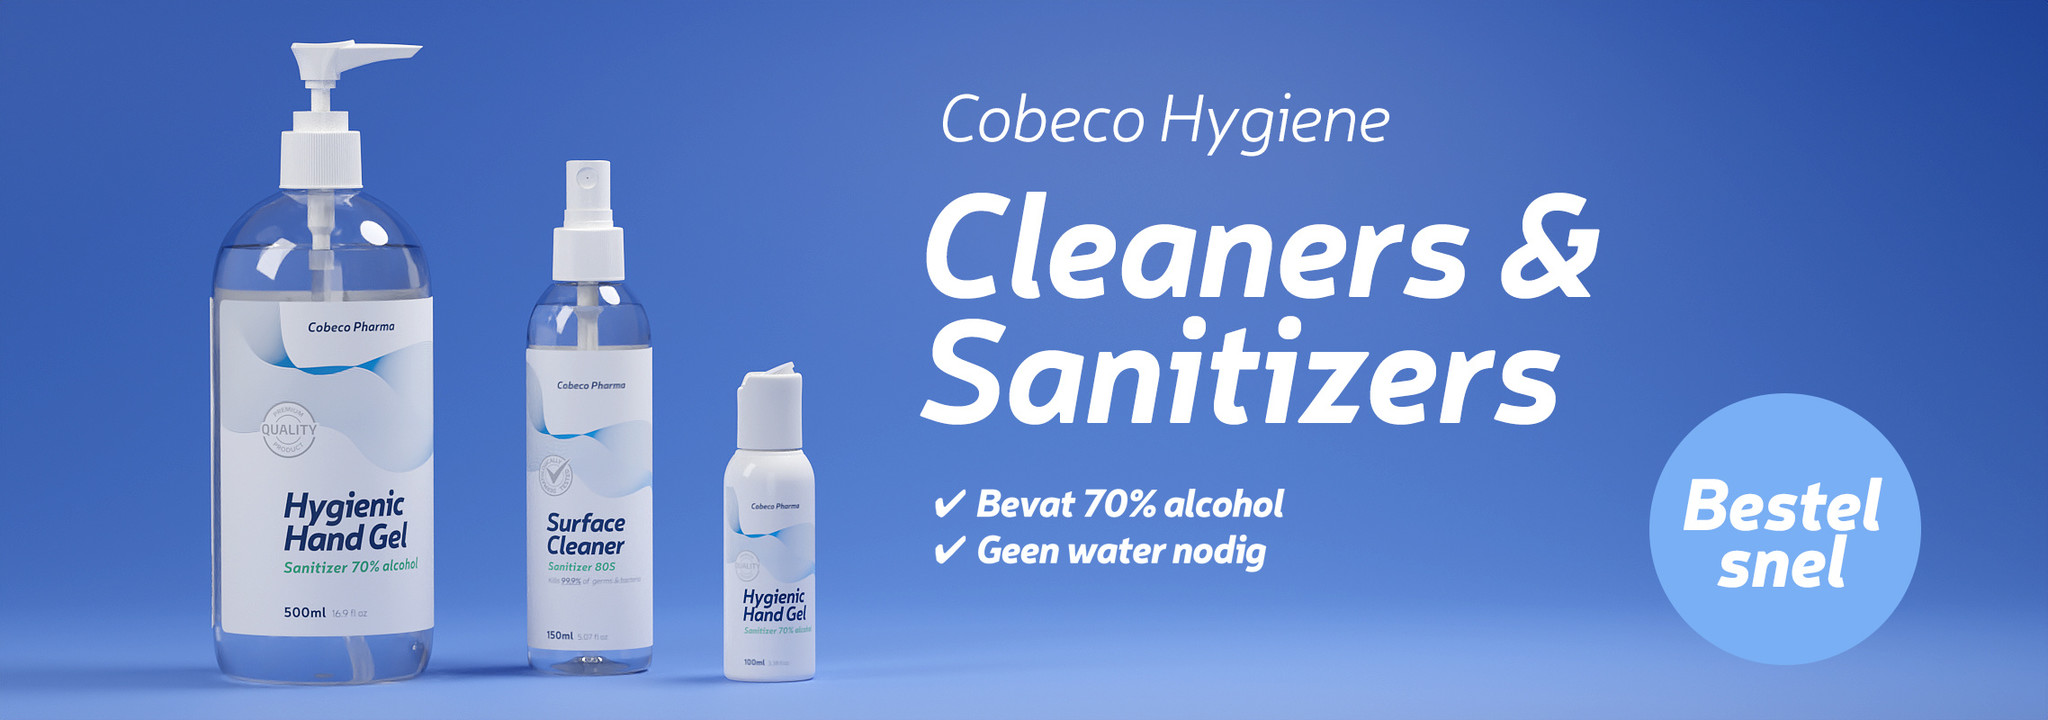 Cobeco Cleaners